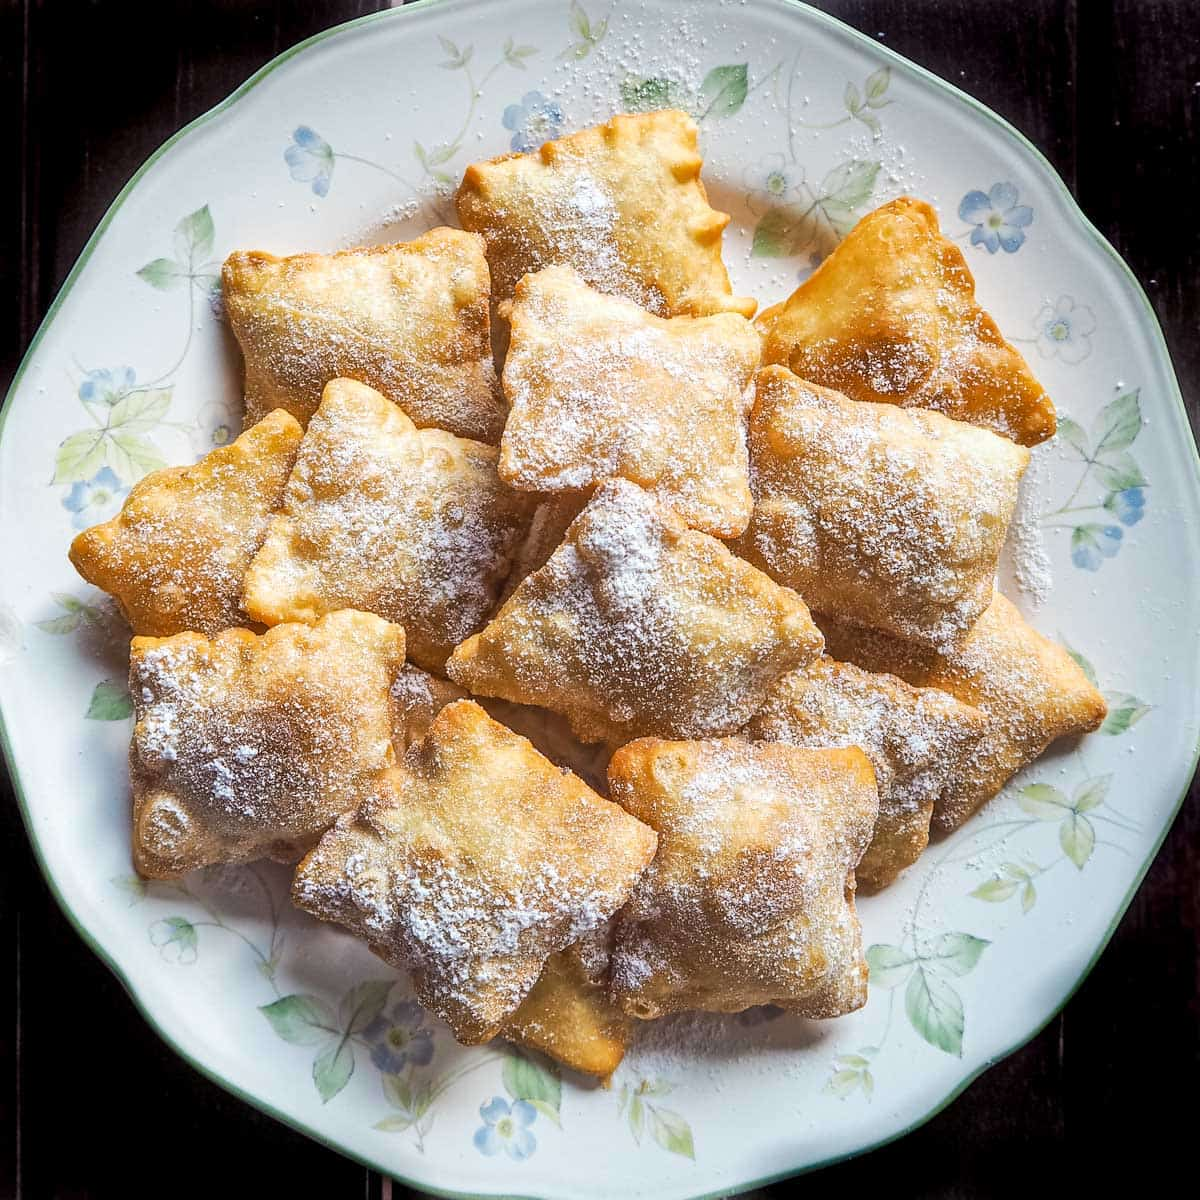 Fried square pastry puffs on a white plate